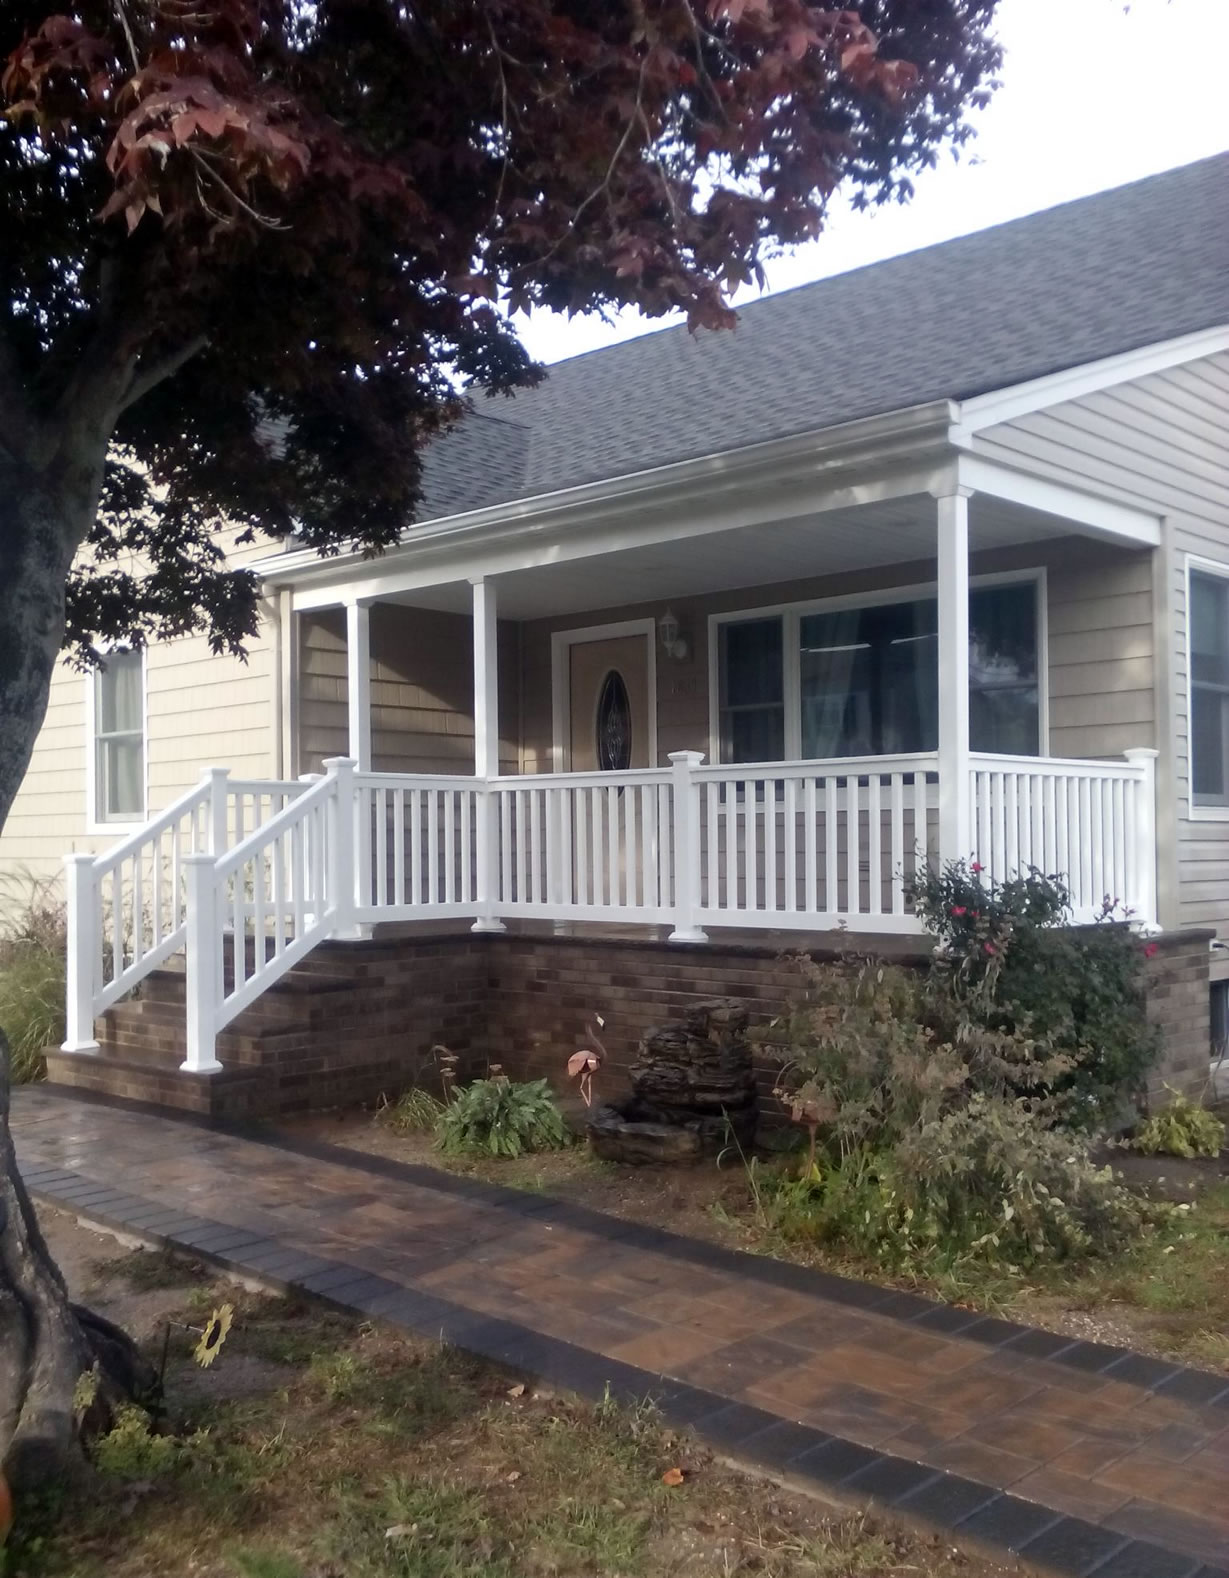 Phoenix Style Railing Installed with Basic Square Porch Columns